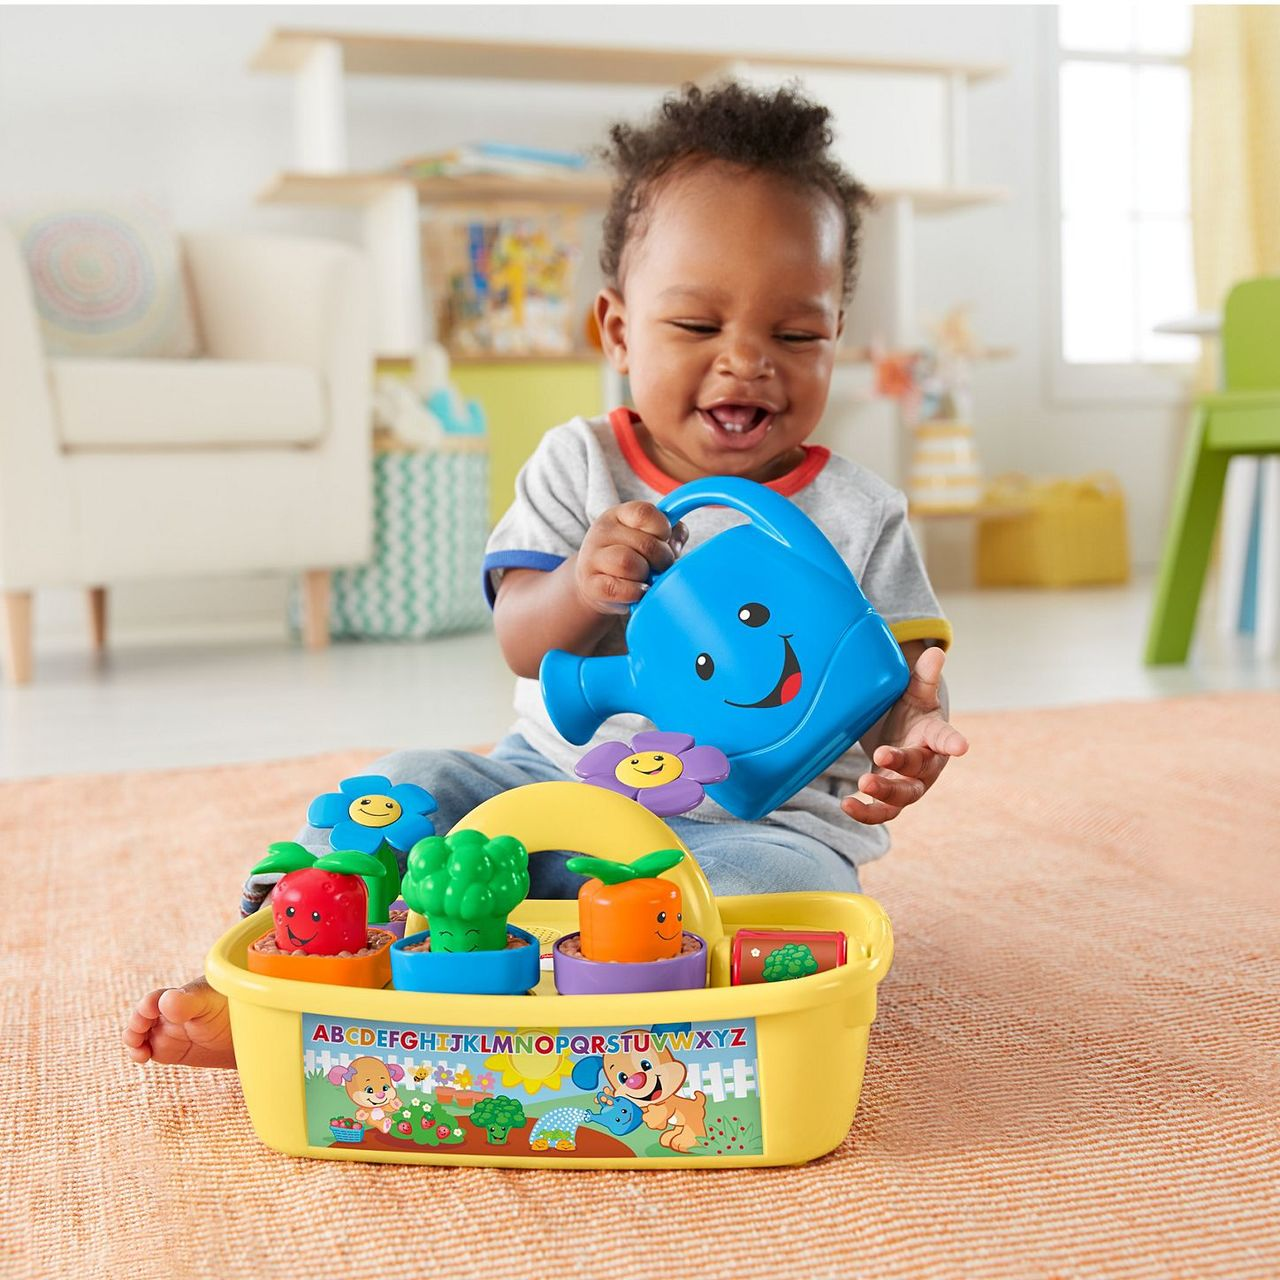 ee282336d746 Fisherprice Laugh & Learn Smart Stages Grow N Learn Garden Caddy ...